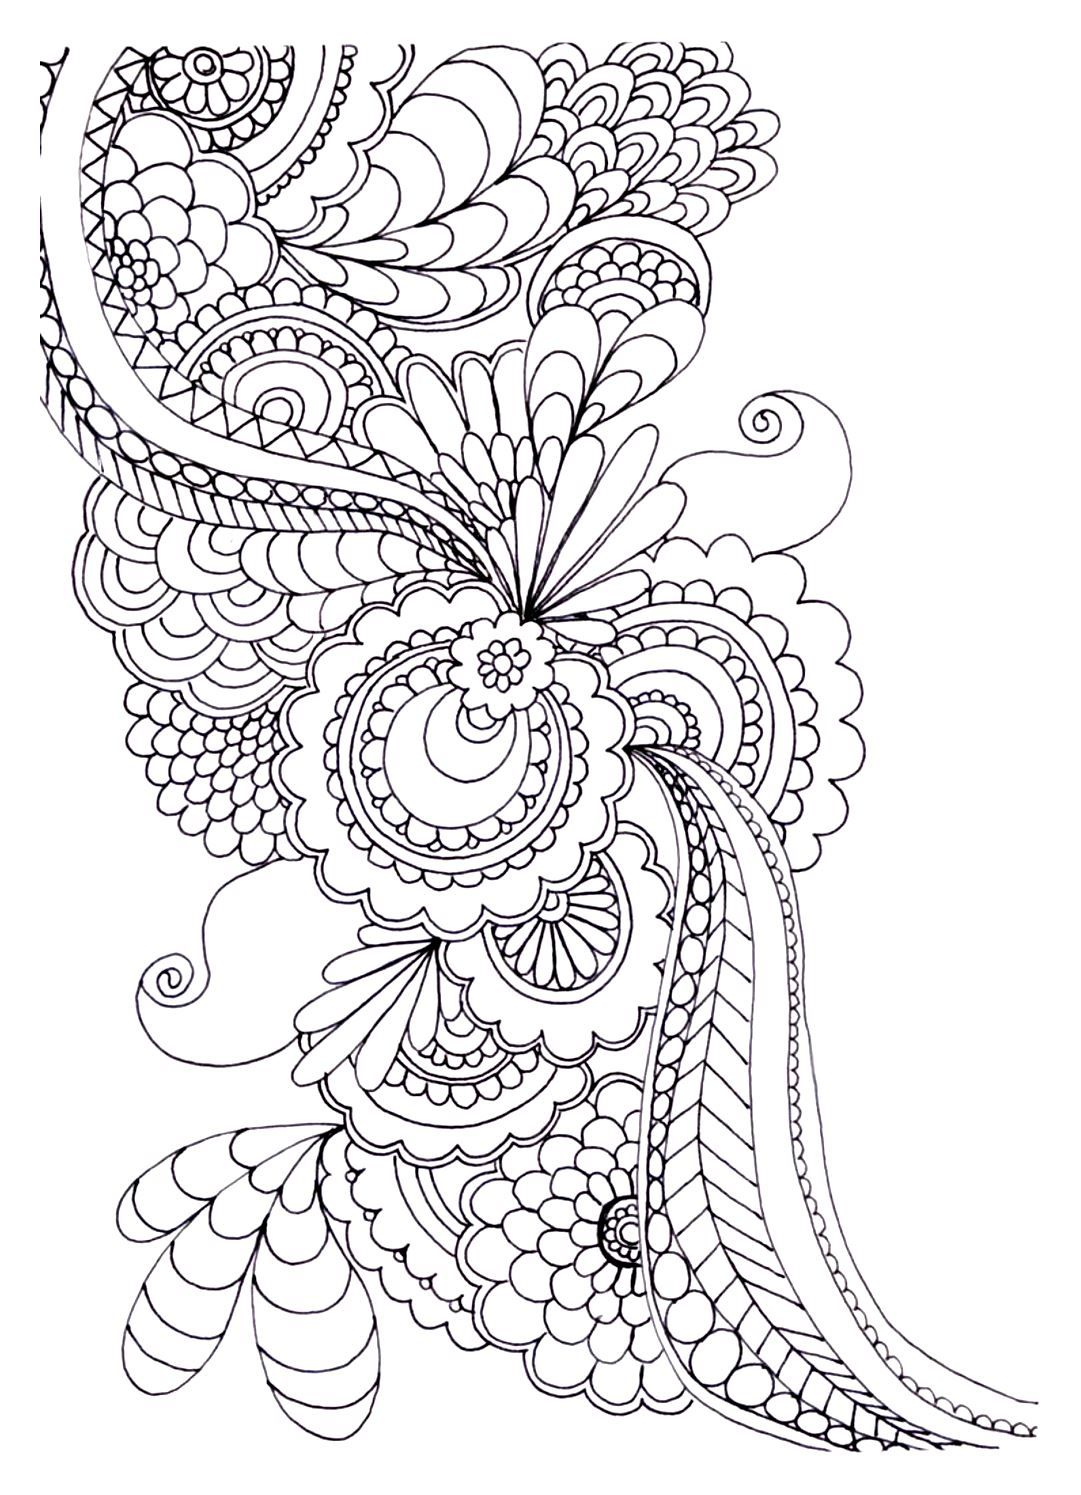 Zen coloring books for adults app - To Print This Free Coloring Page Coloring Adult Zen Anti Stress